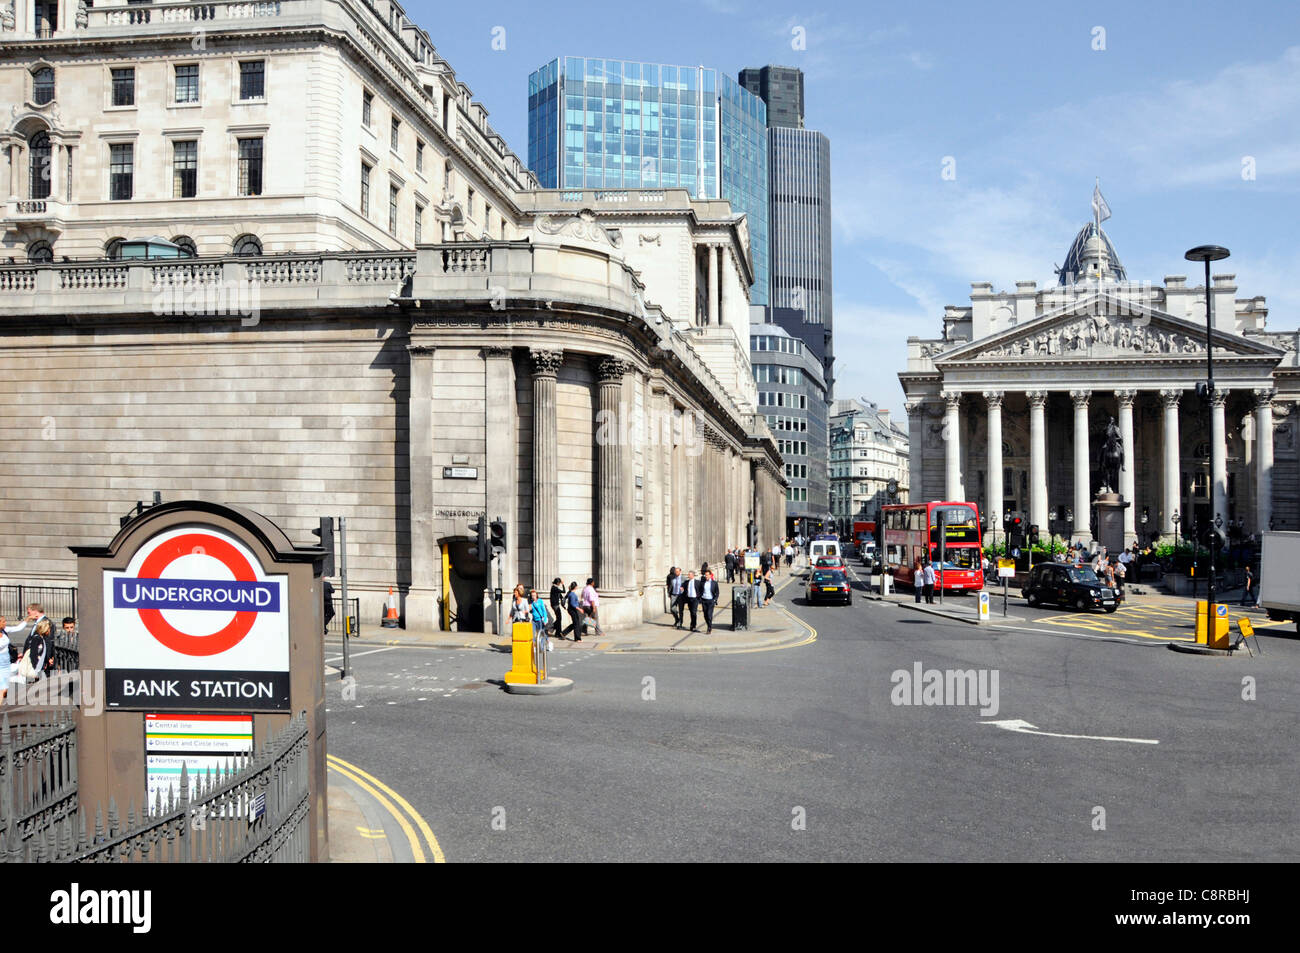 The Bank of England (left) & Royal Exchange facade (right) in the City of London Financial District with Bank - Stock Image